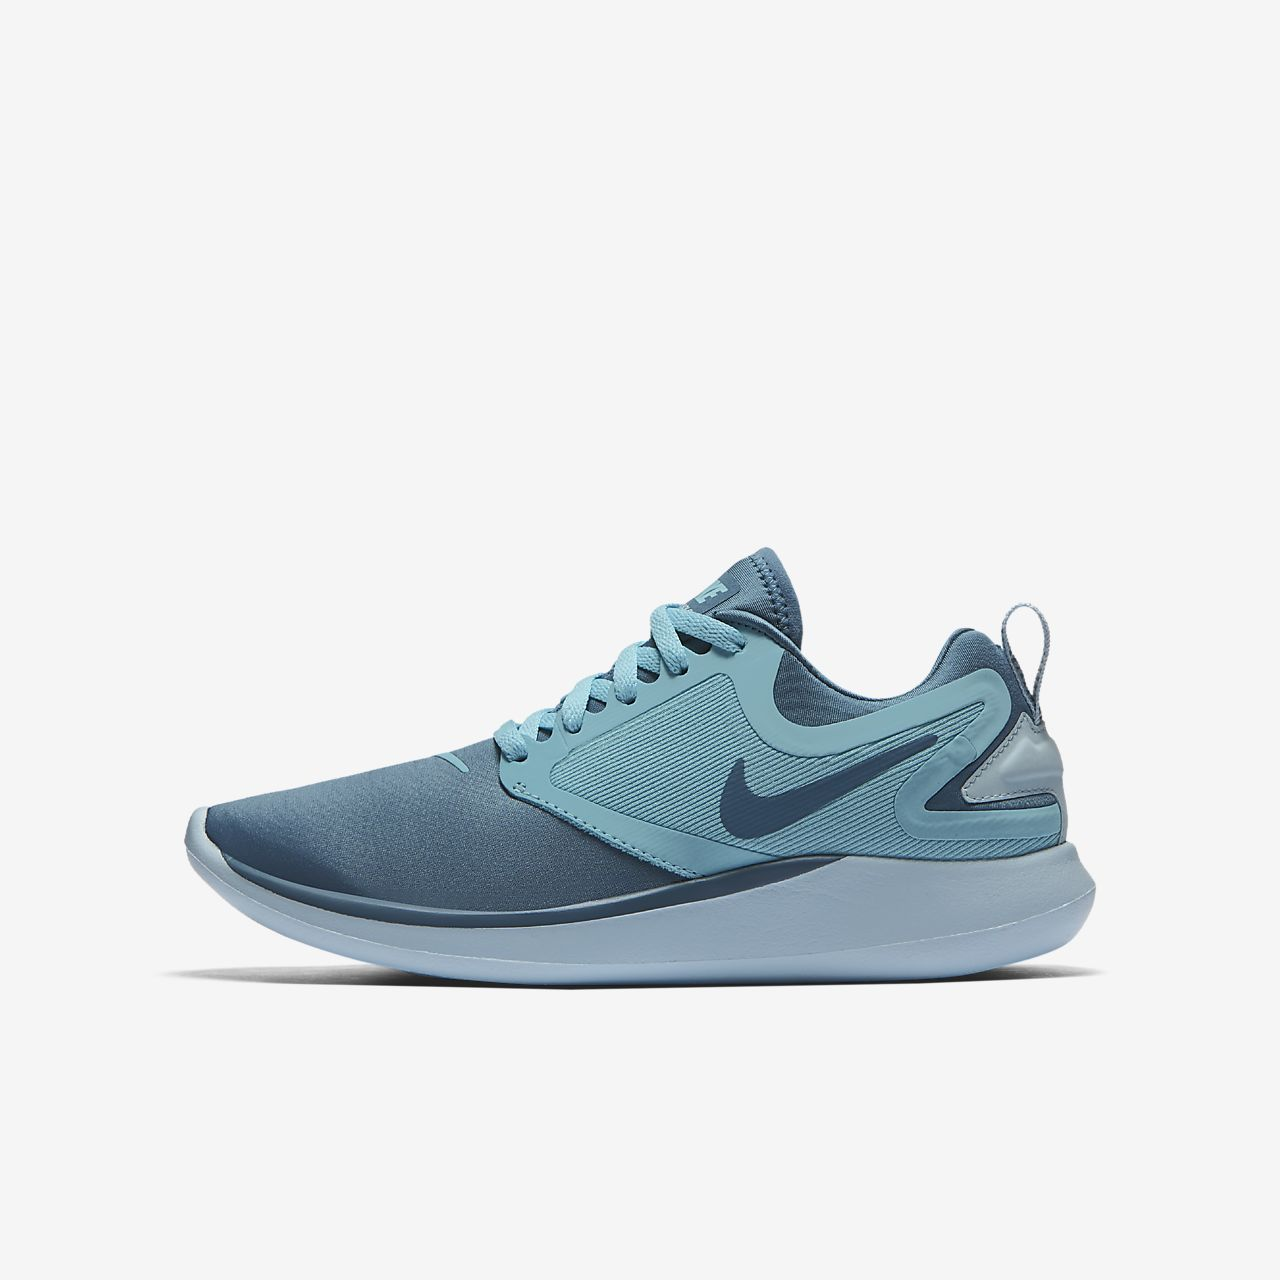 Nike LunarSolo Boys Running Shoes Blue bG1152H